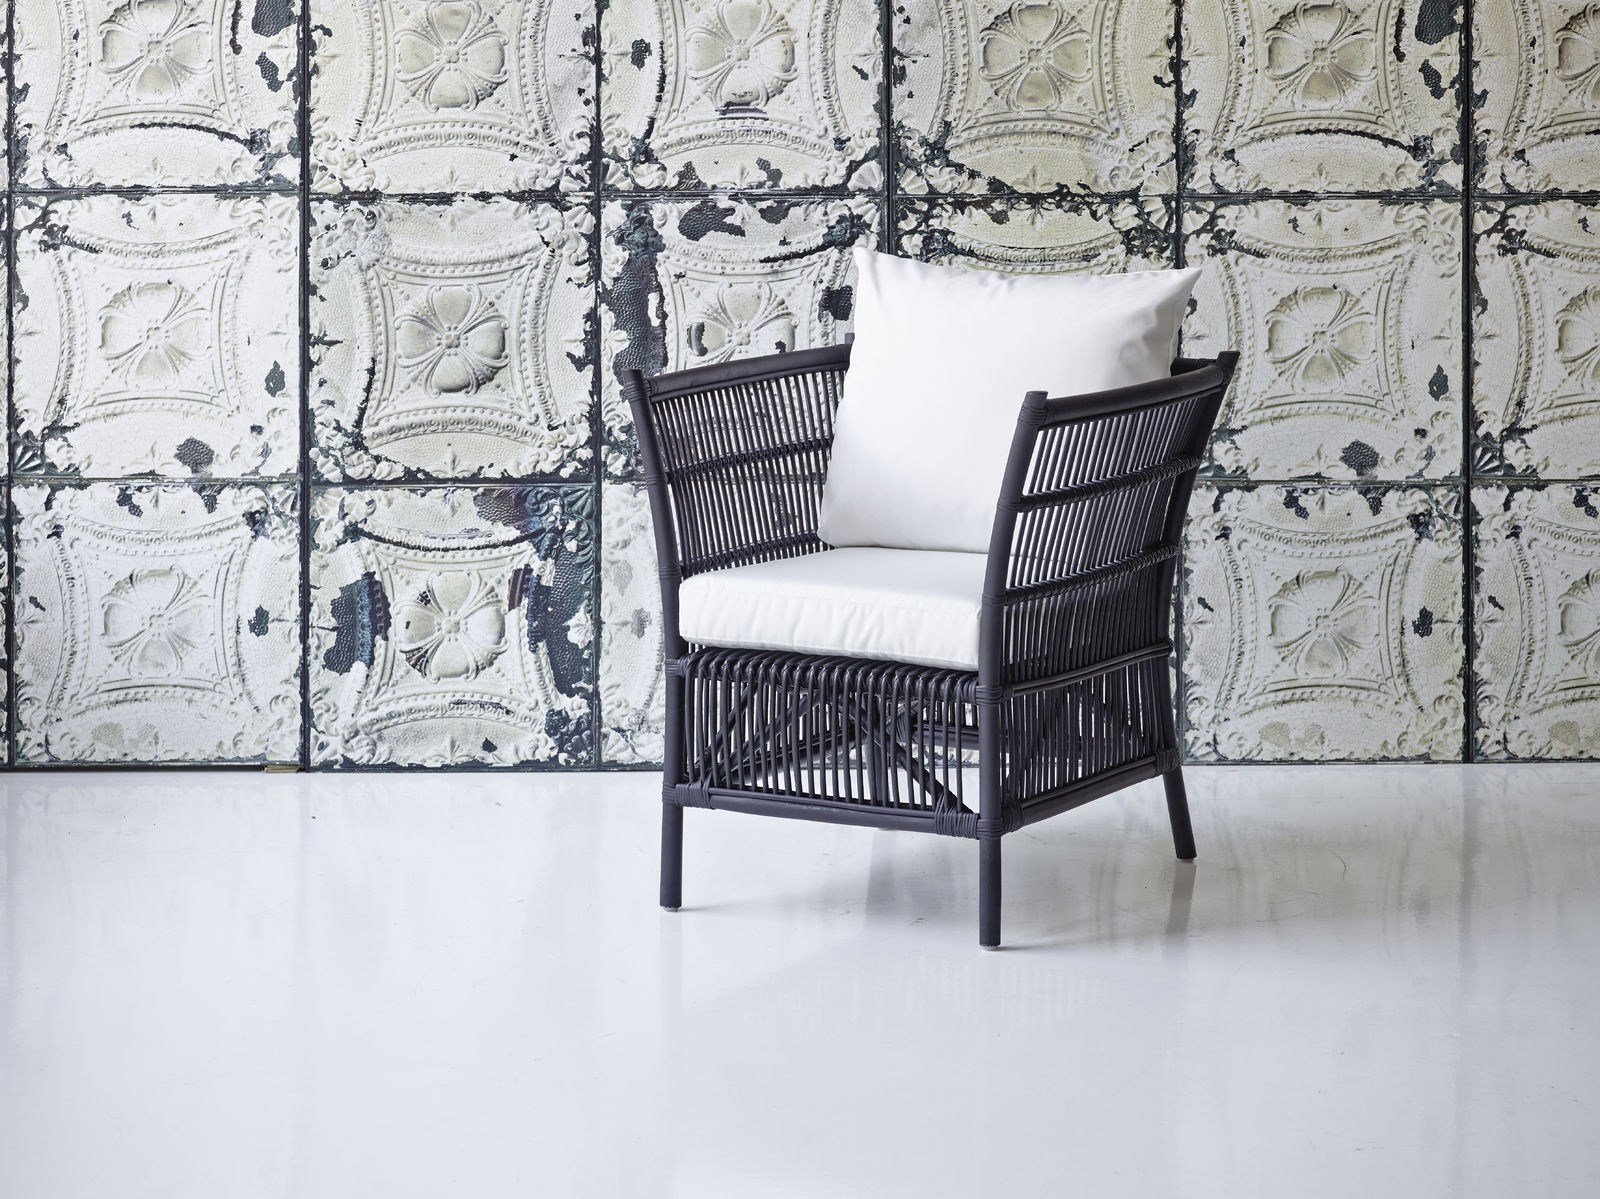 1086S_Donatello chair black with white cushions-1600x1600